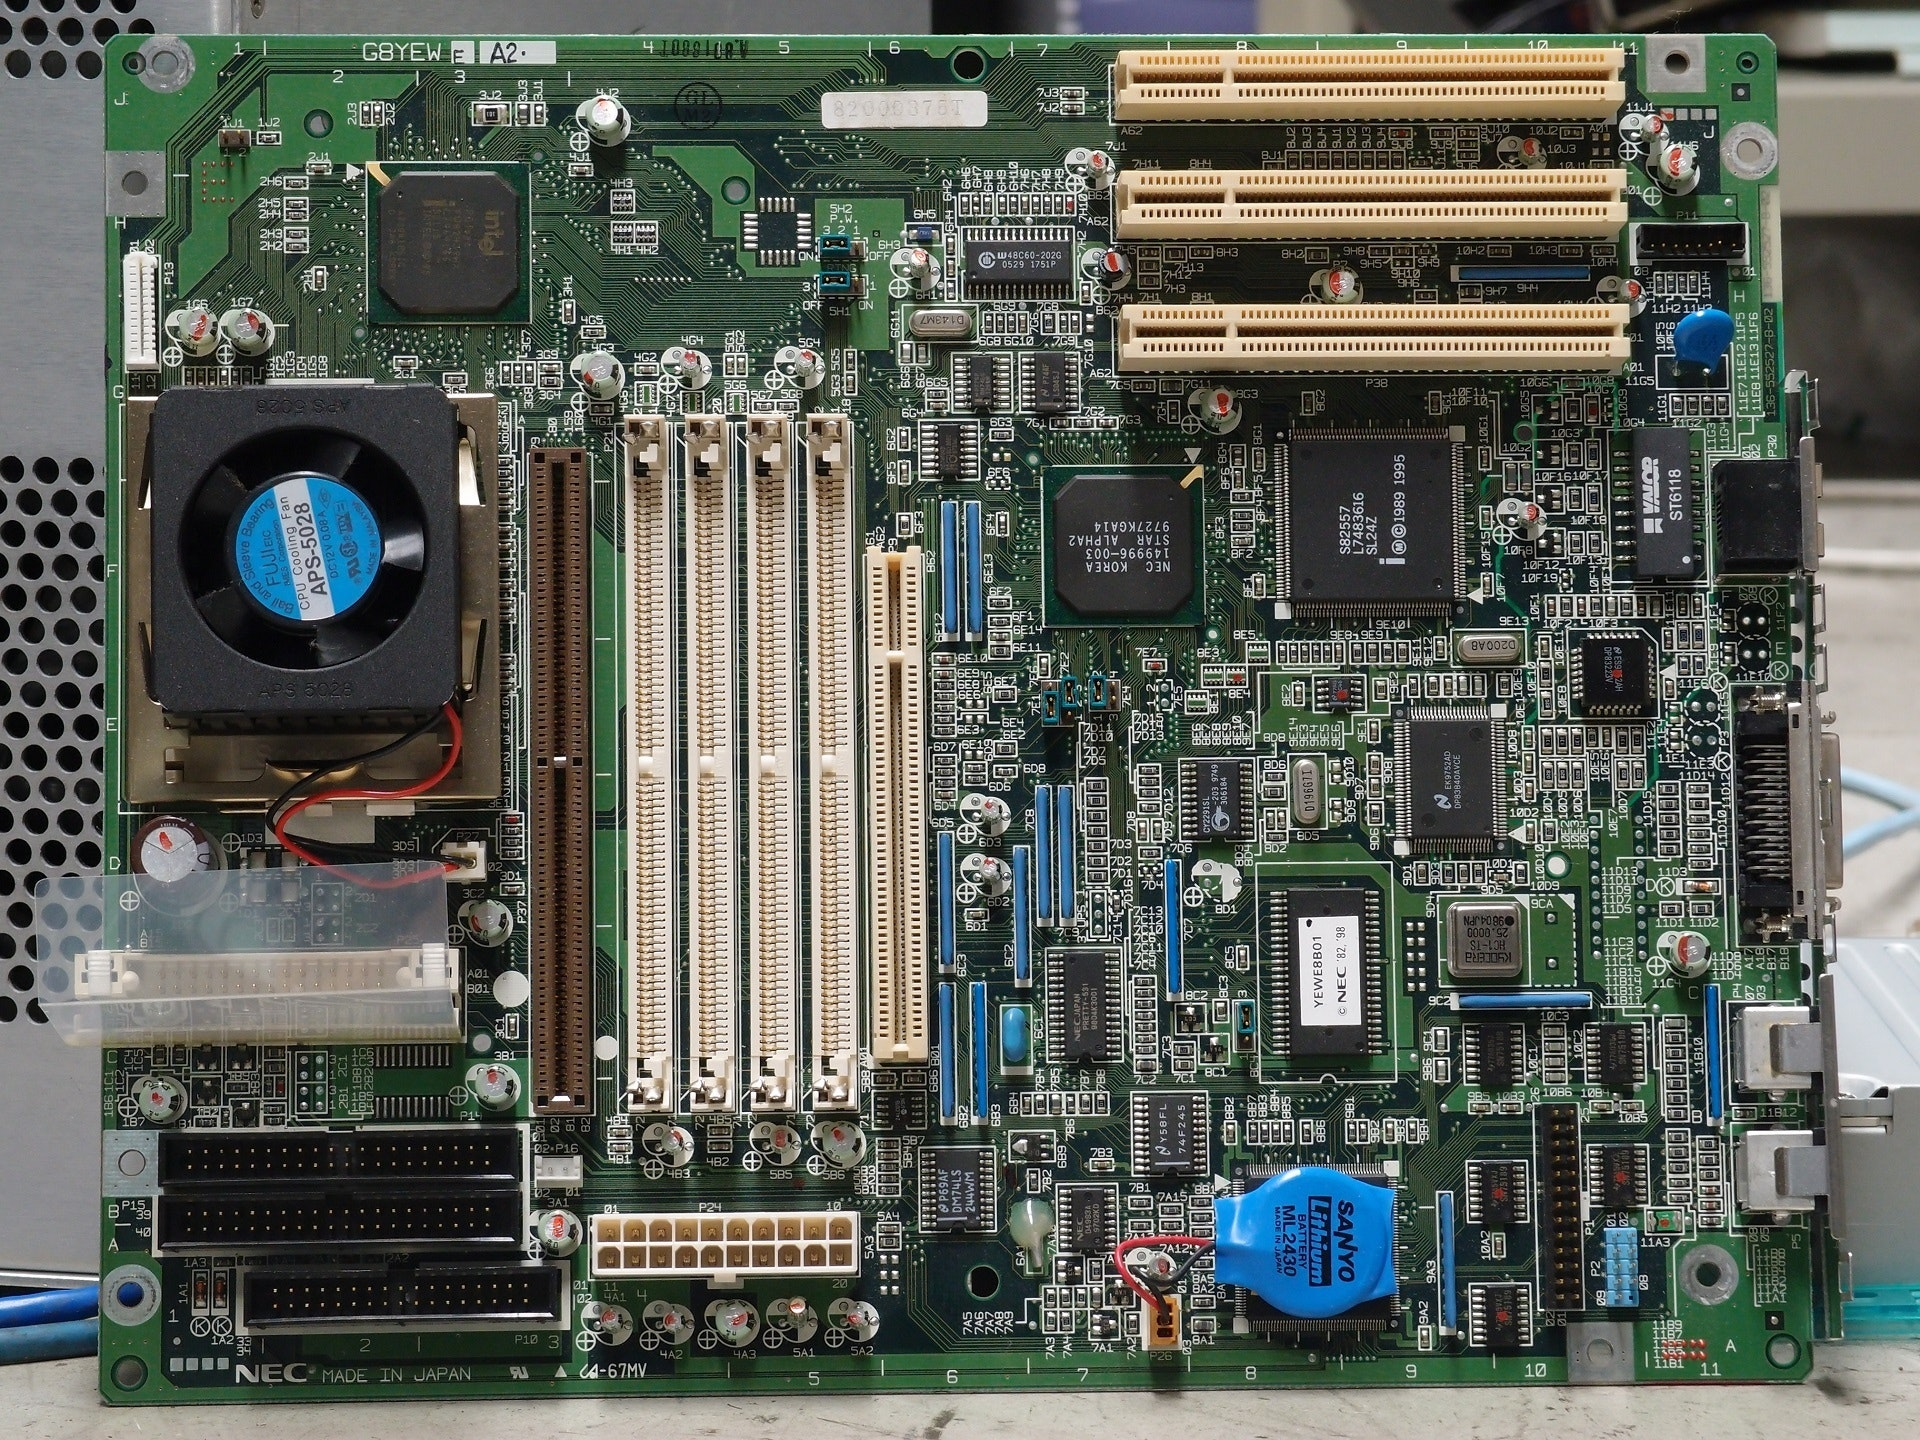 Computer Motherboard Schematic Diagram Wiring Green Free Stock Photo Rh Pexels Com Basic